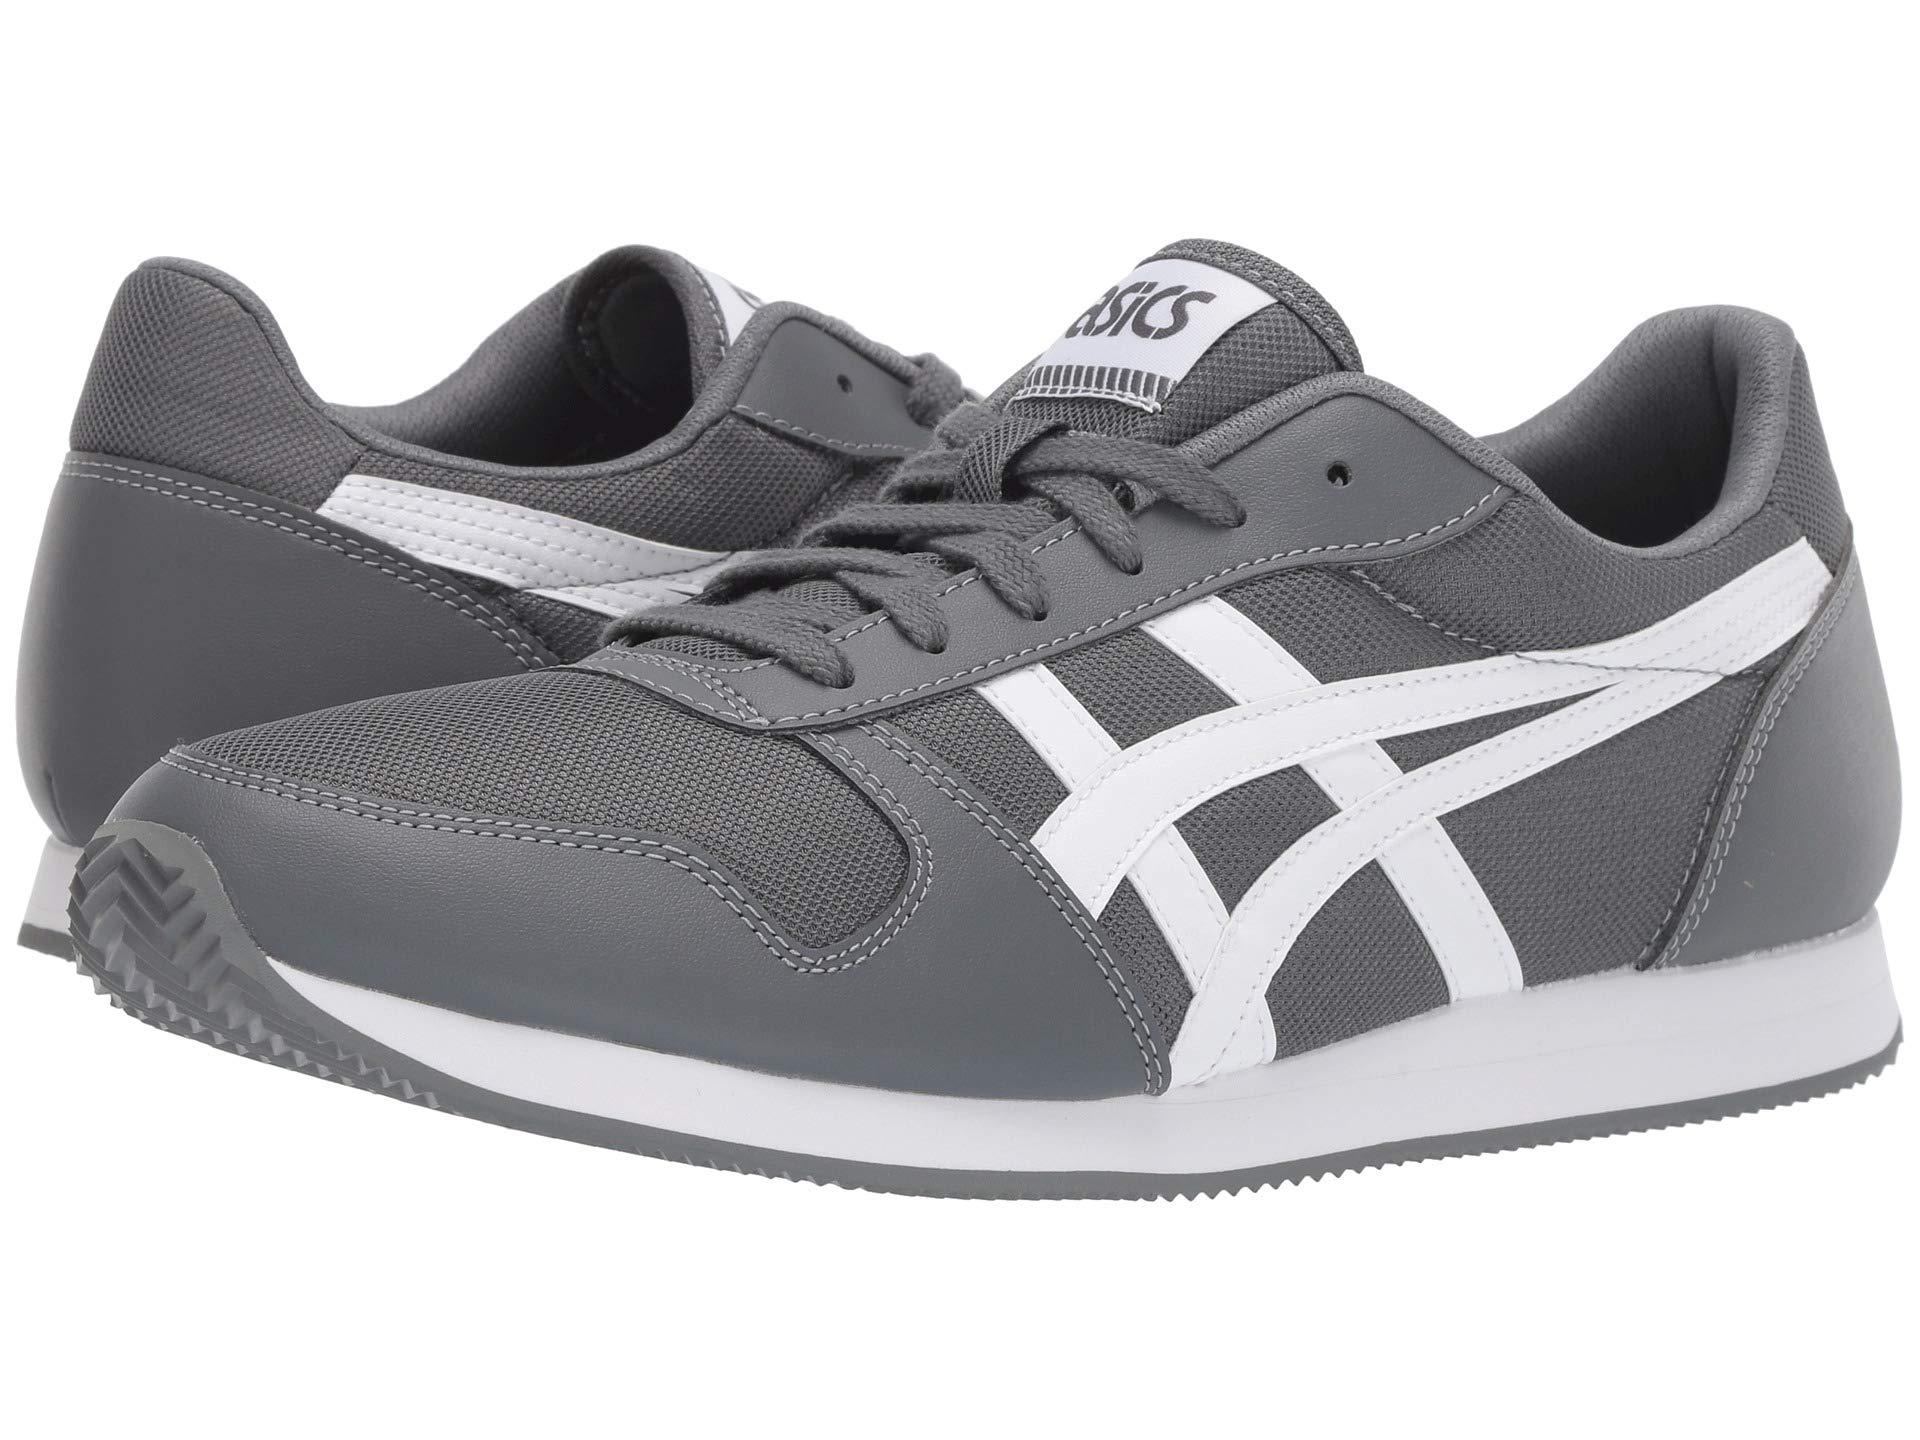 2f12d1583b06 Lyst - Asics Curreo Ii (black white) Classic Shoes in Gray for Men